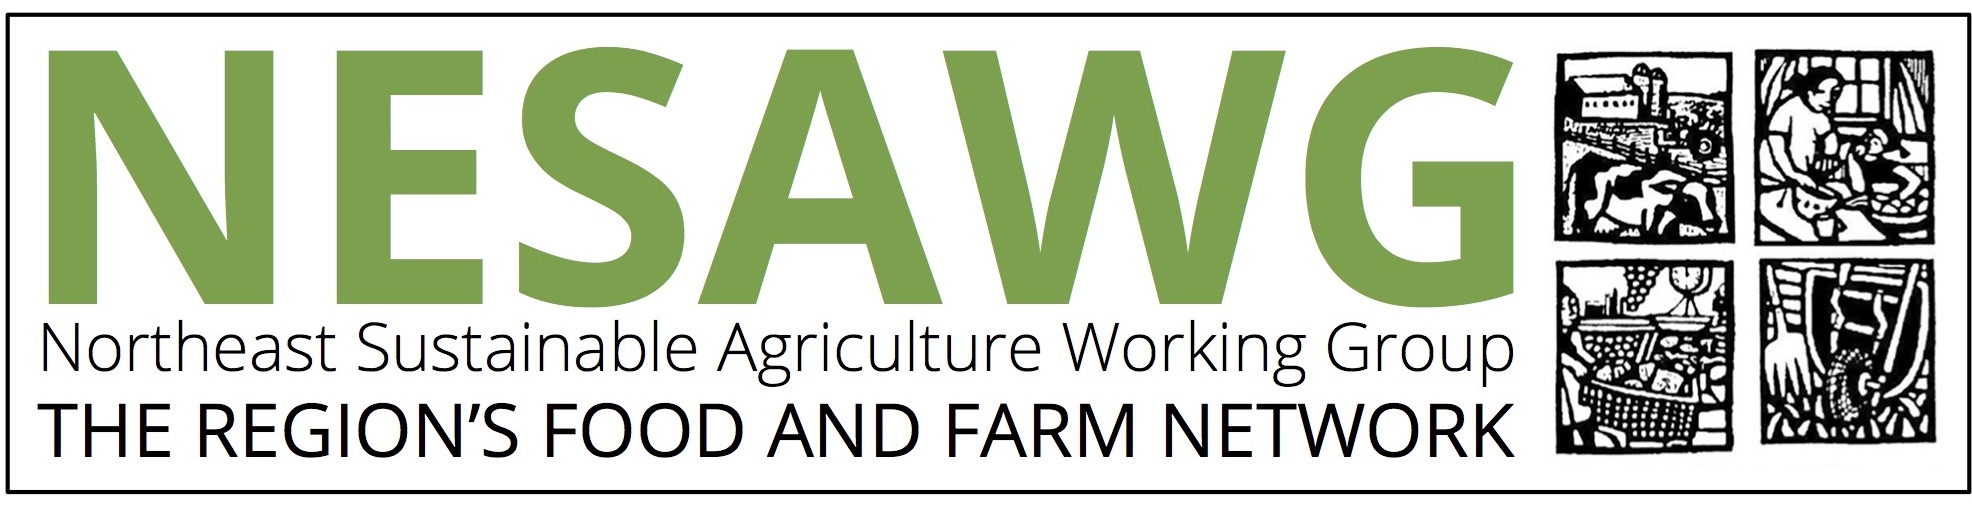 Northeast Sustainable Agriculture Working Group, a project of the Tides Center